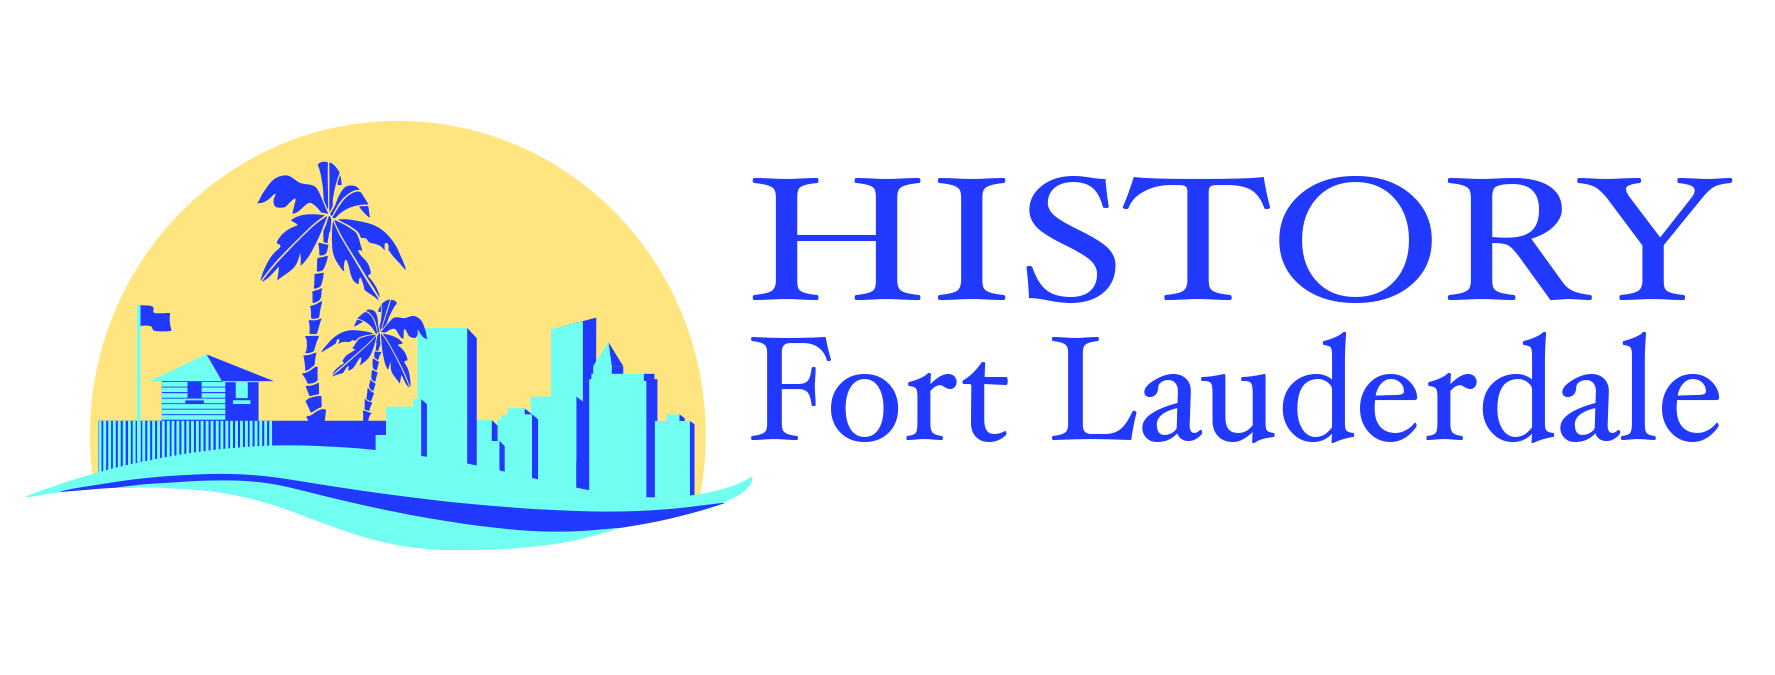 HistoryFTL_NewLogo_Transparent_Horizontal.jpg